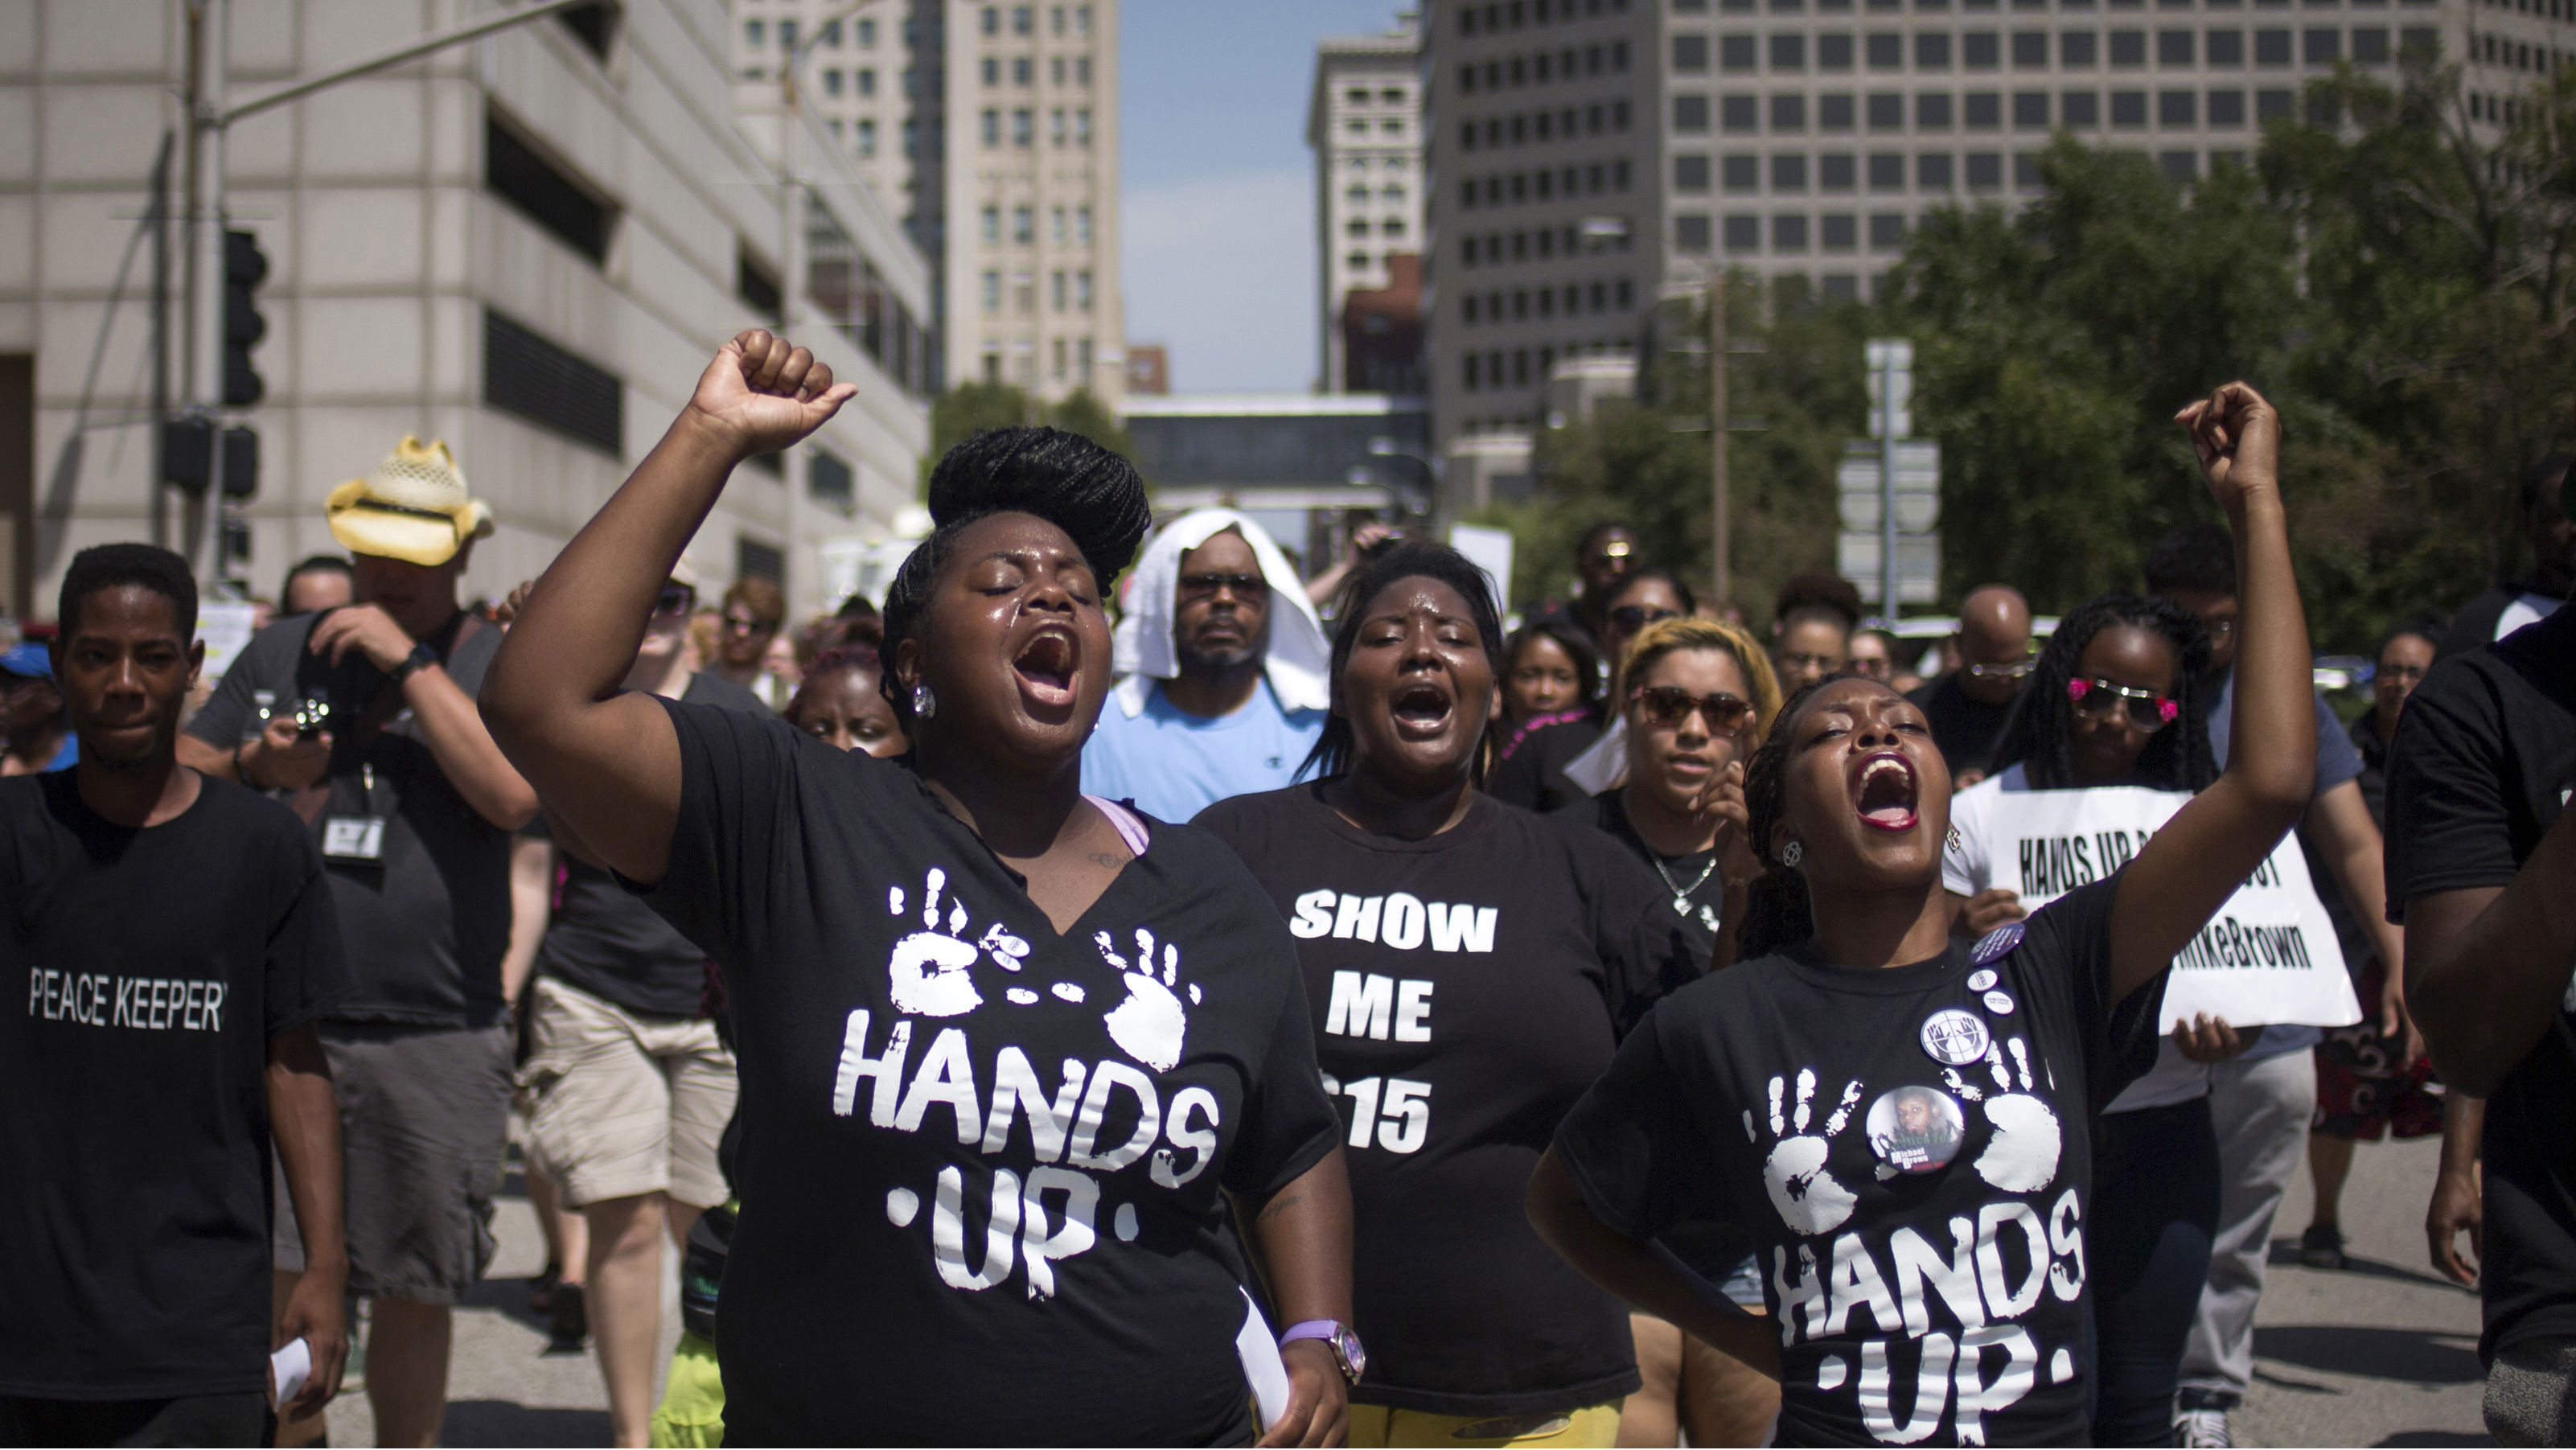 Activists demand justice for Michael Brown